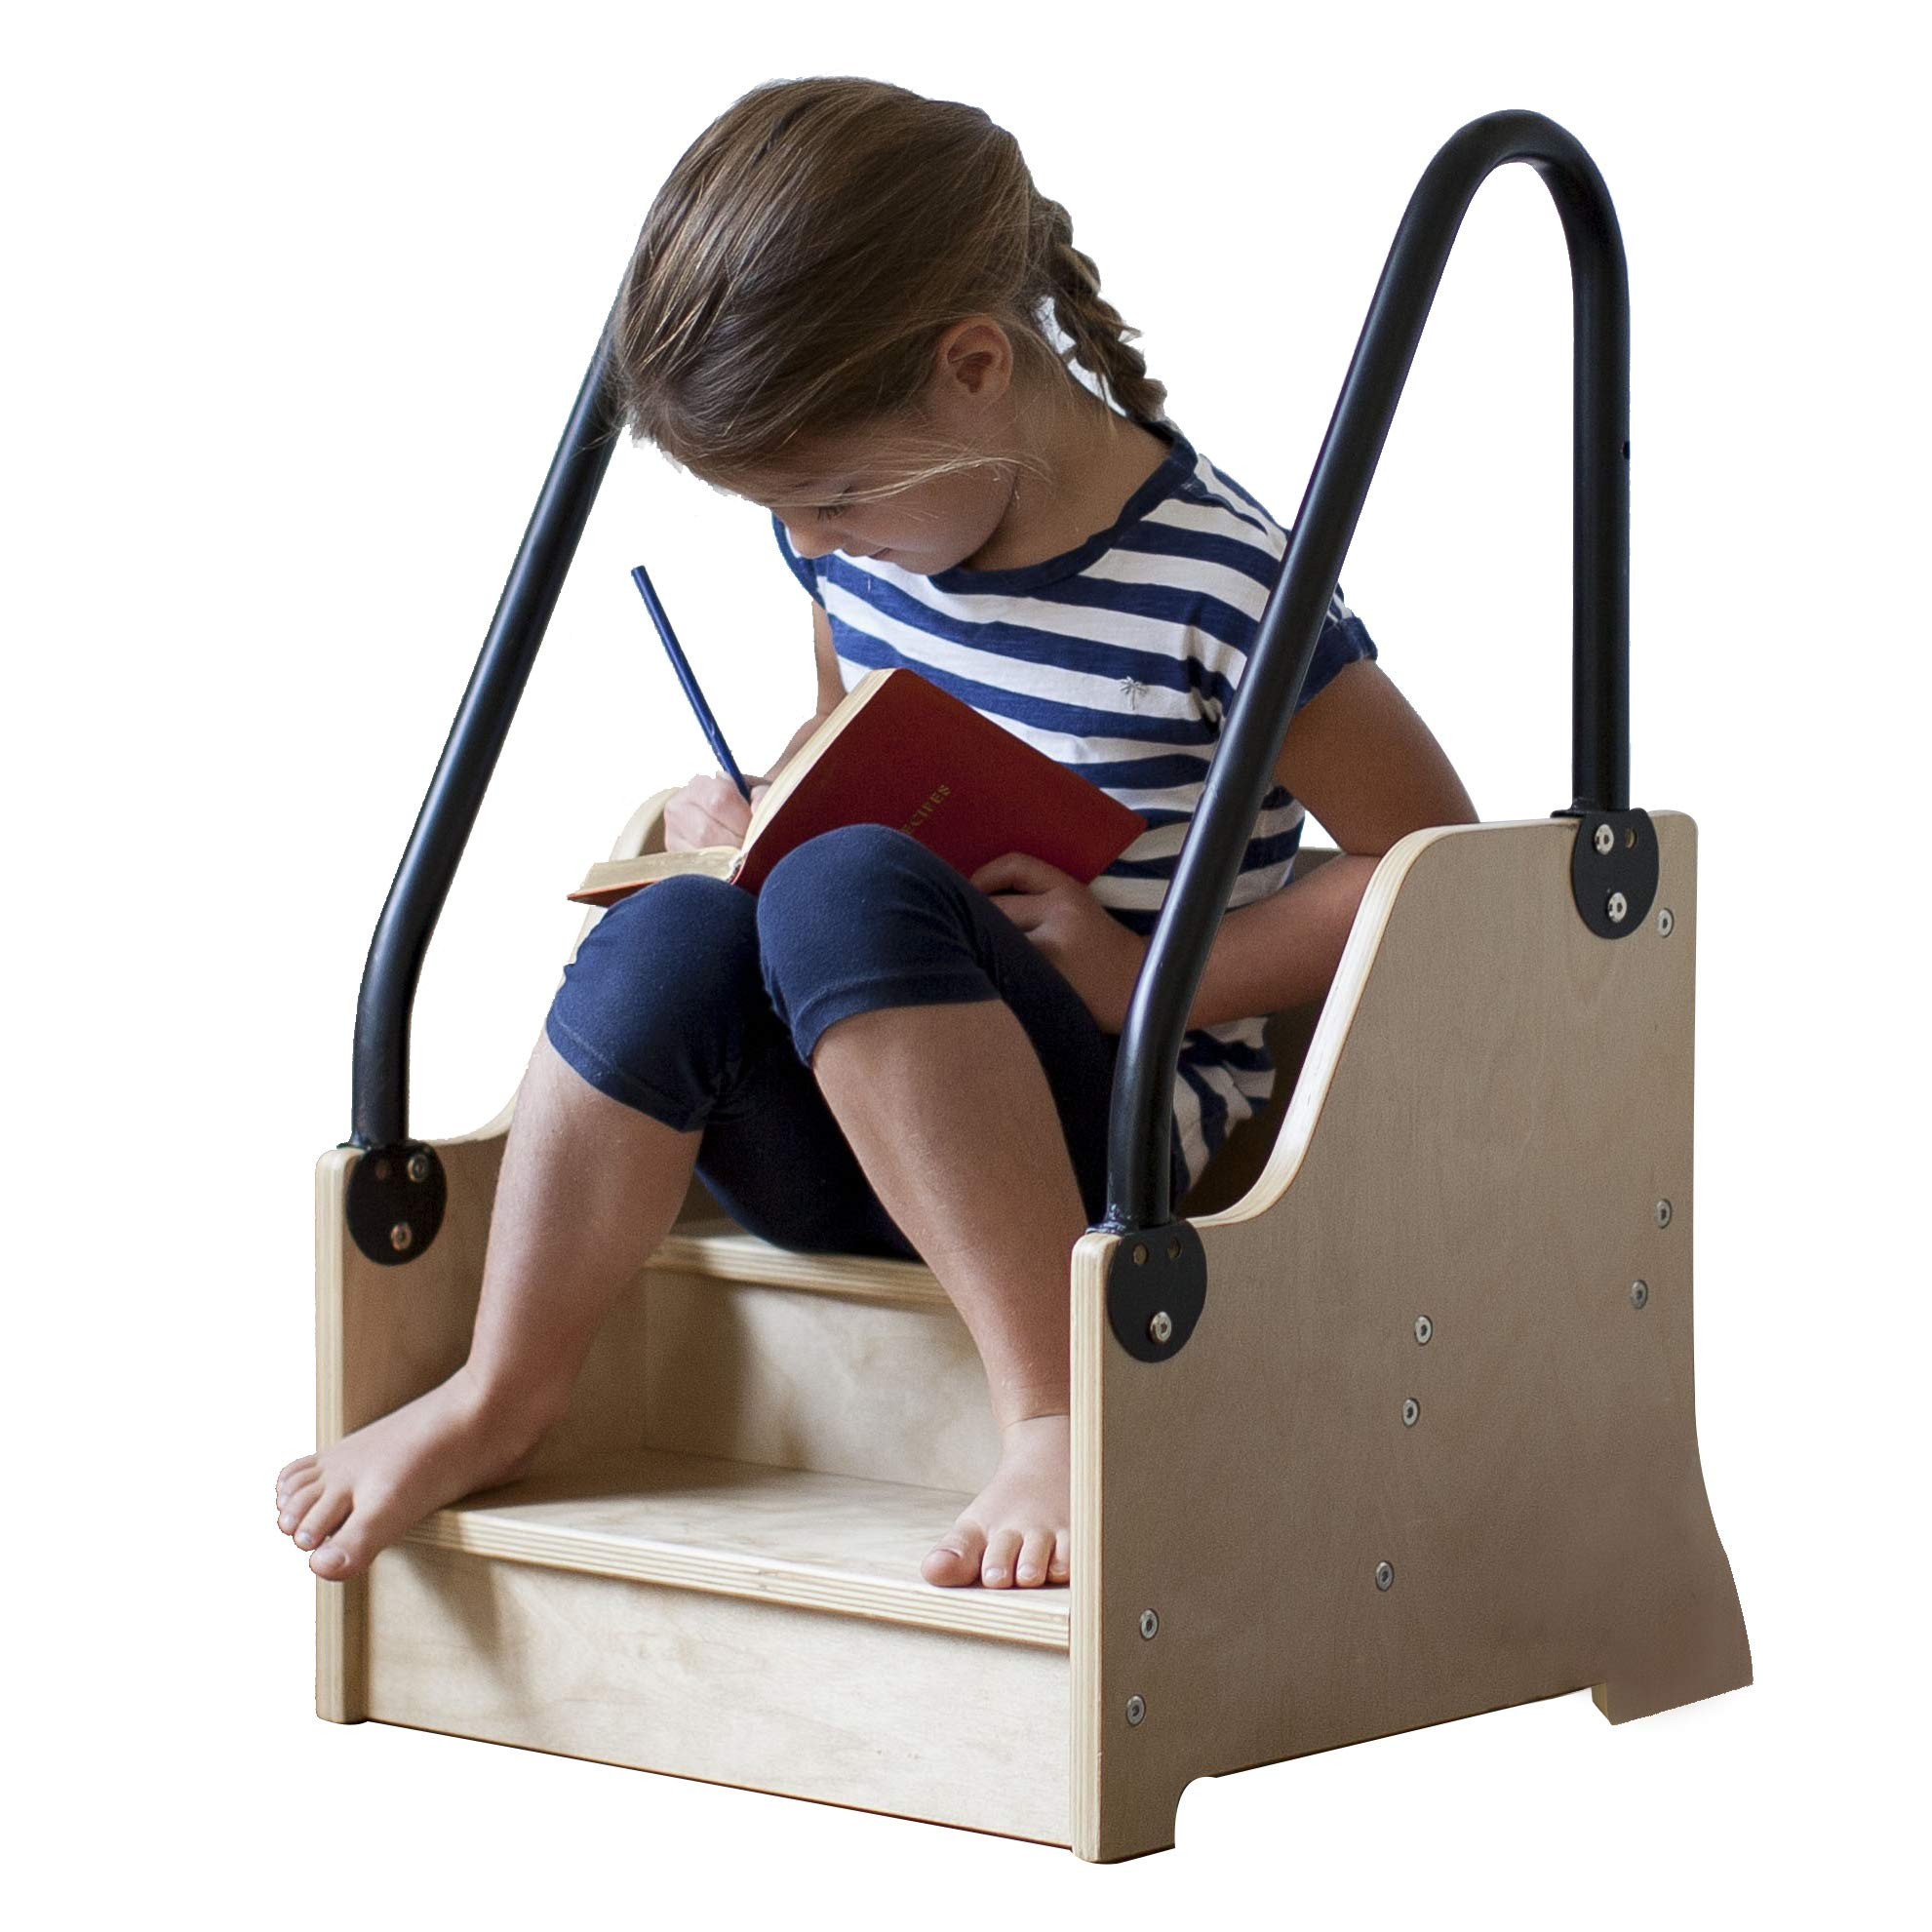 Little Partners Reach Up! Step Stool, Natural by Little Partners